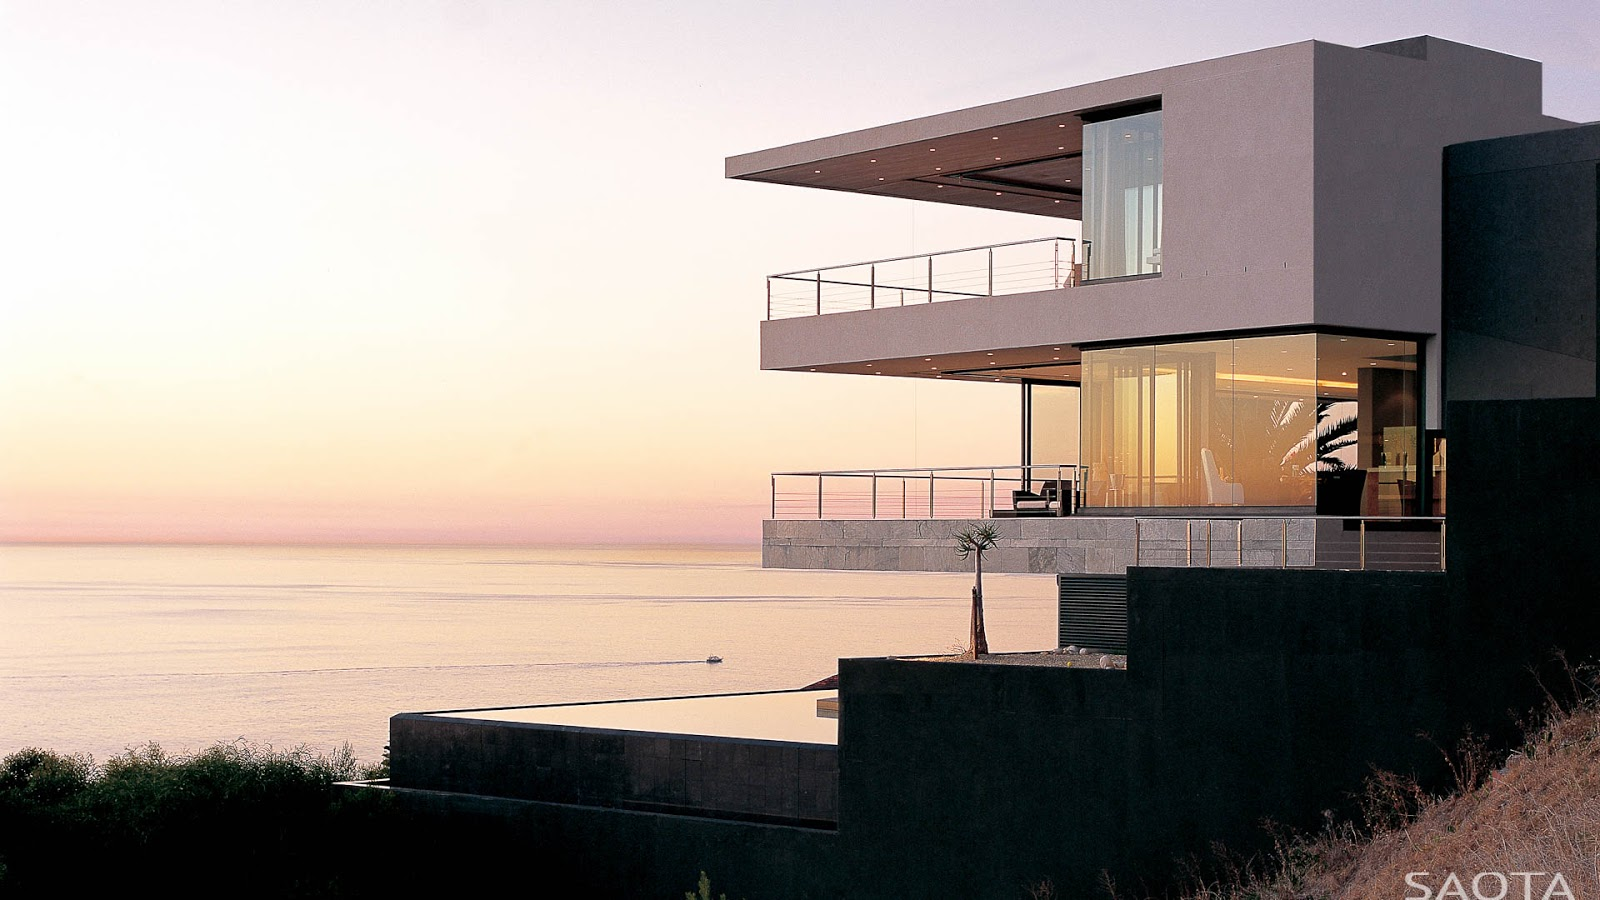 St Leon Cape Town, South Africa By Saota